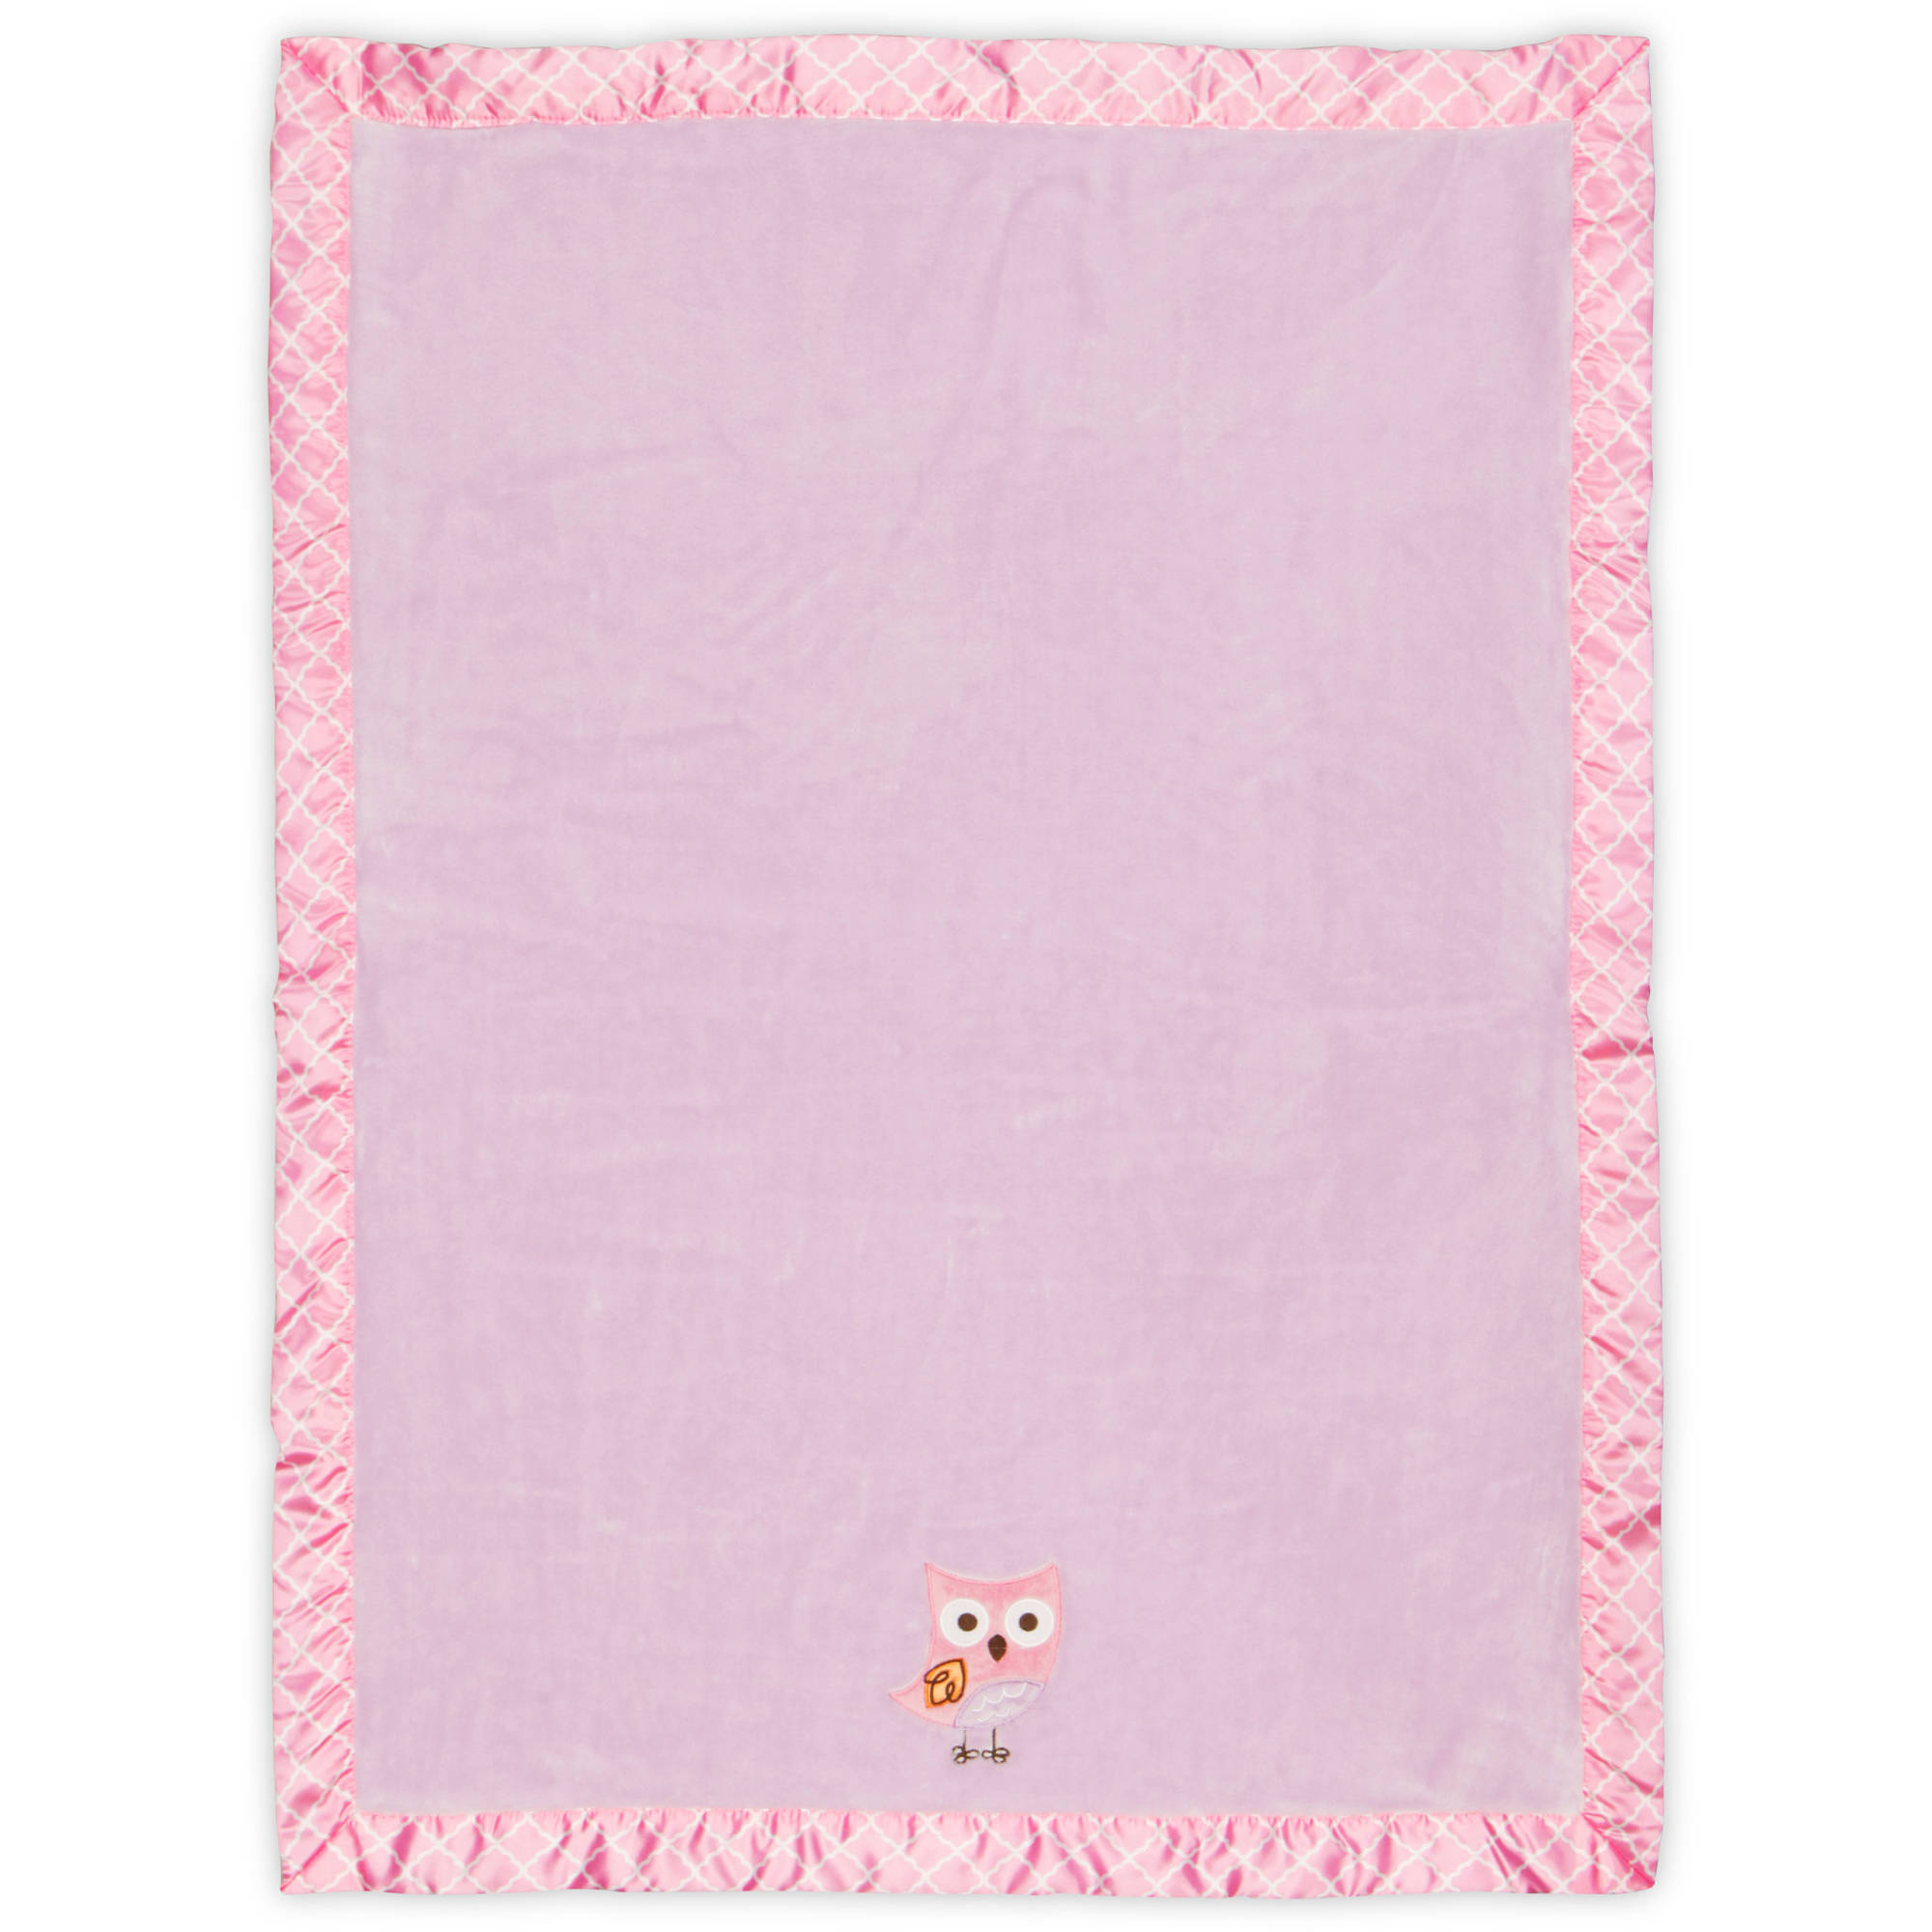 Bananafish Studio Sweet Owl Girl Silky Coral Plush Blanket